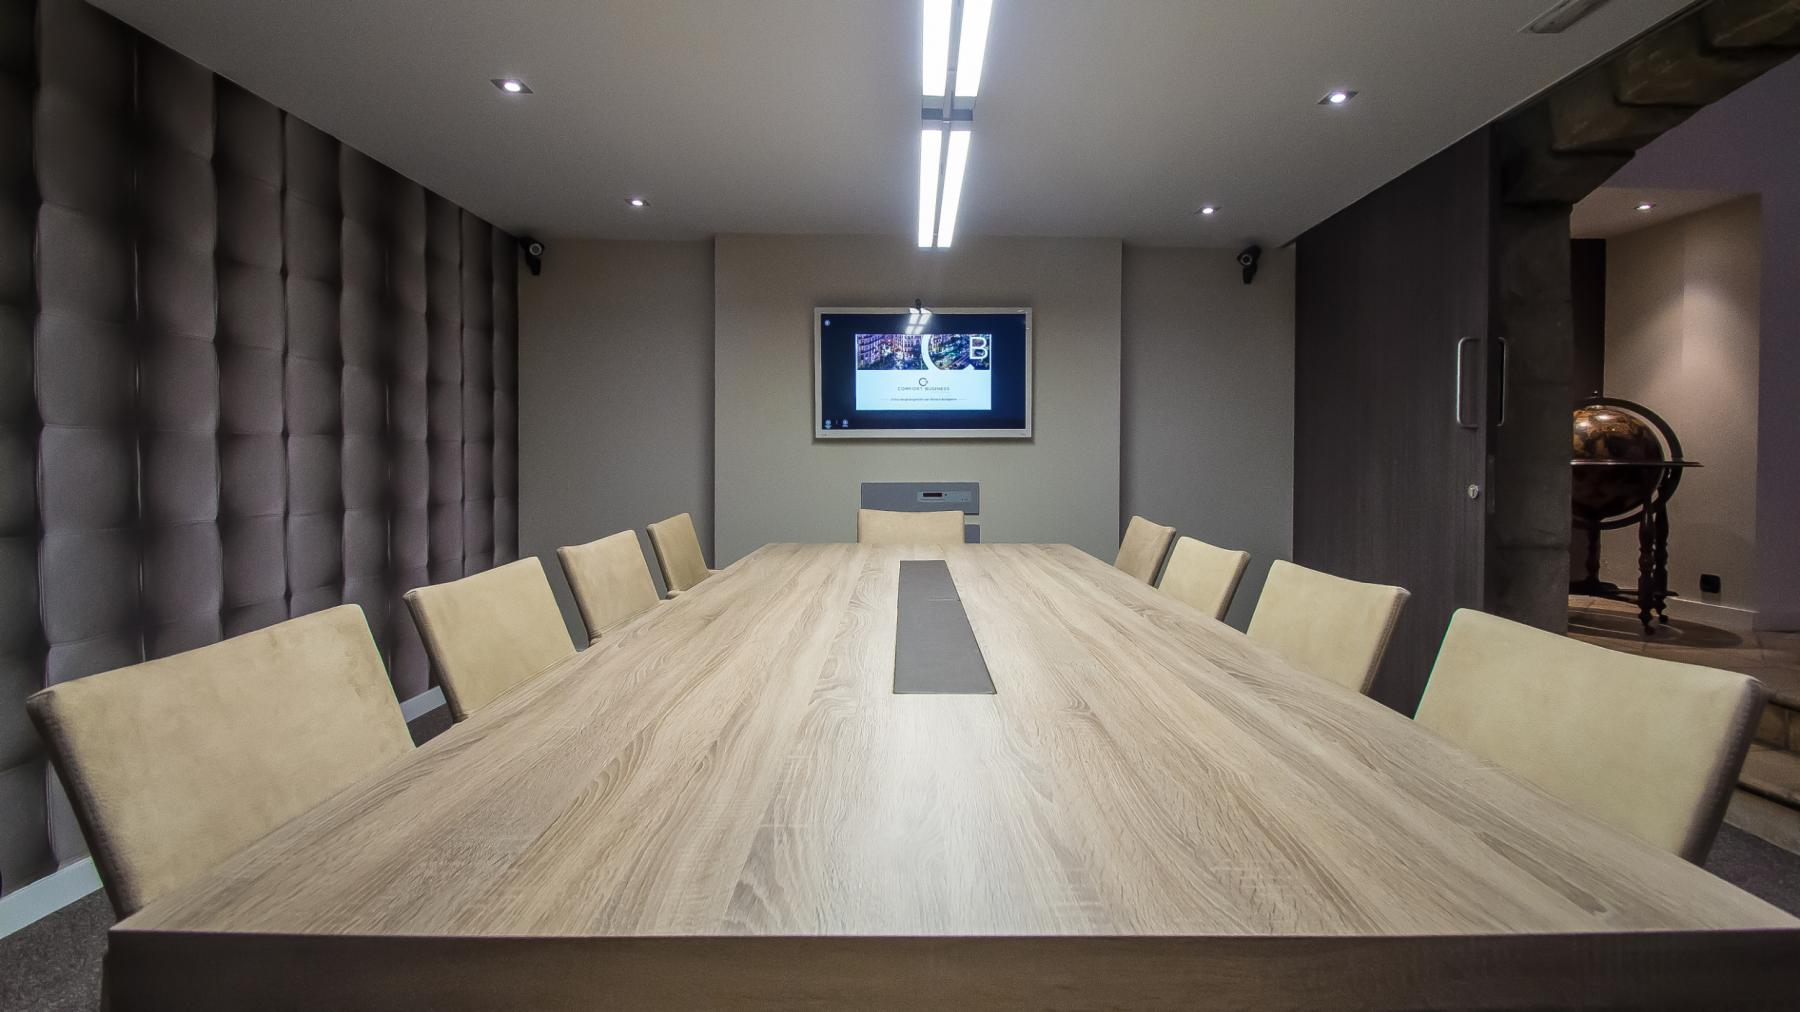 Another great meeting room to rent at Carrer d'Aribau 161